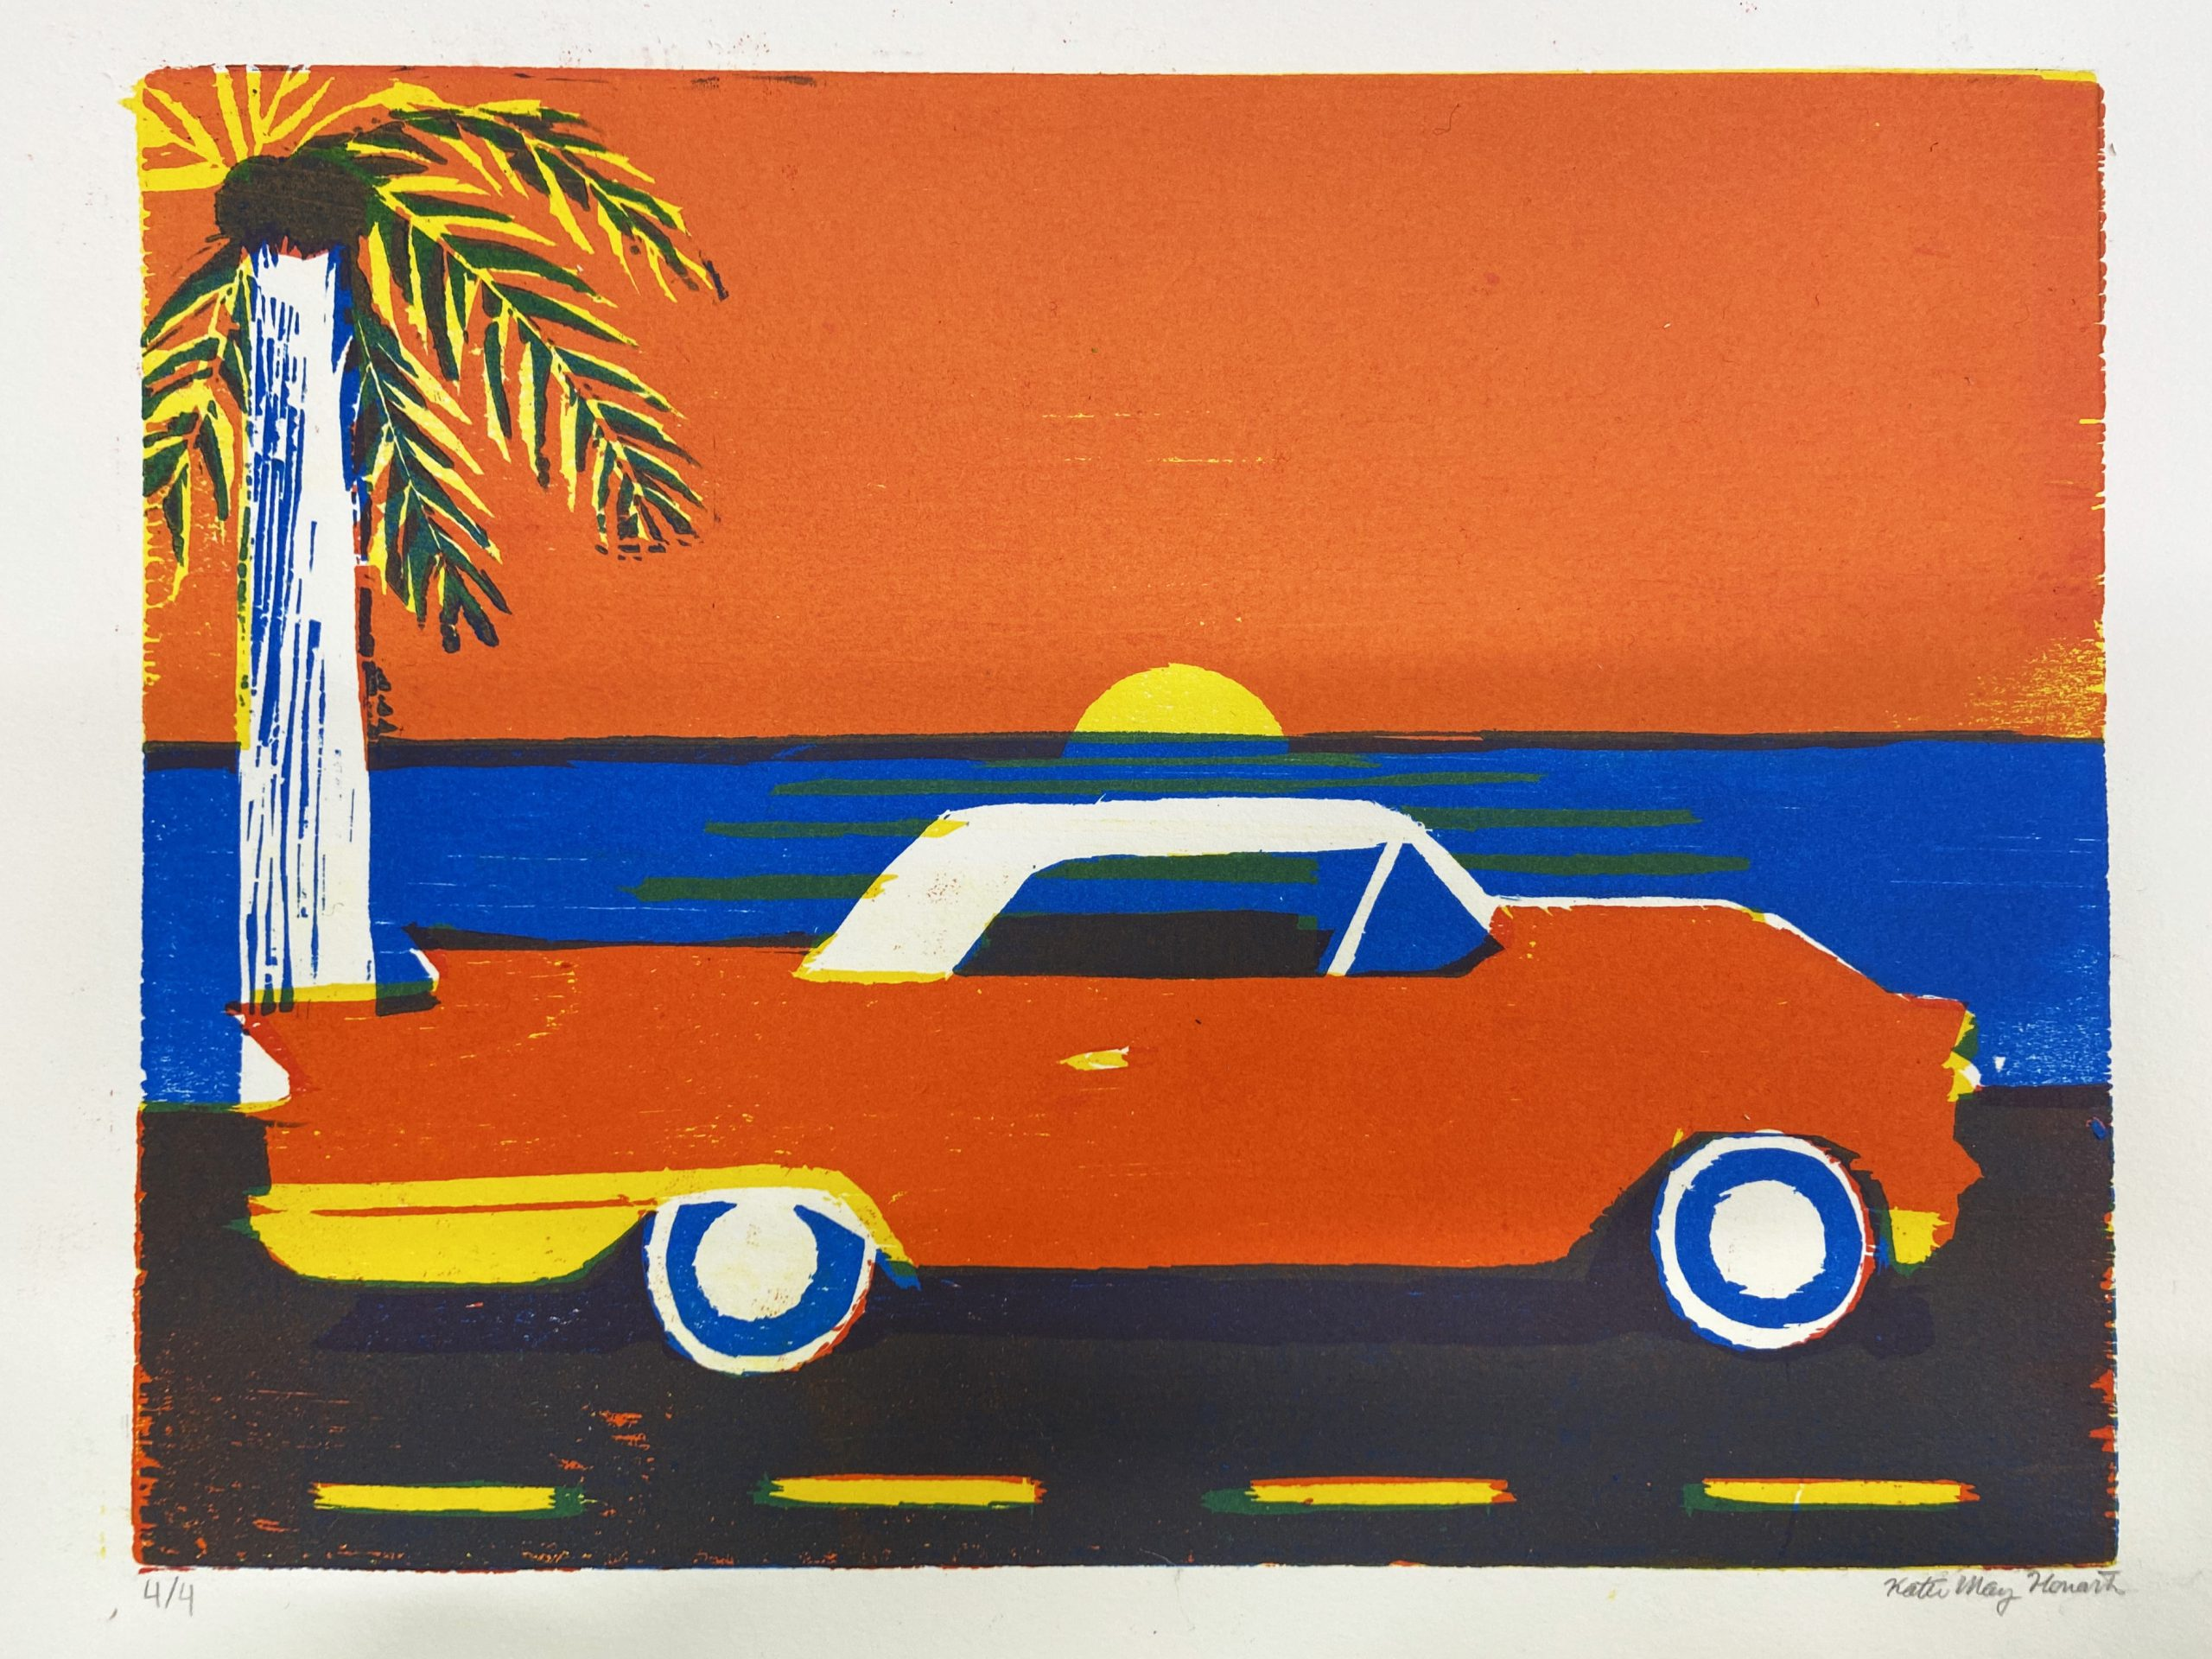 Colorful art print of a vintage car by a beach with a palm tree in the background, by Katie May Howarth